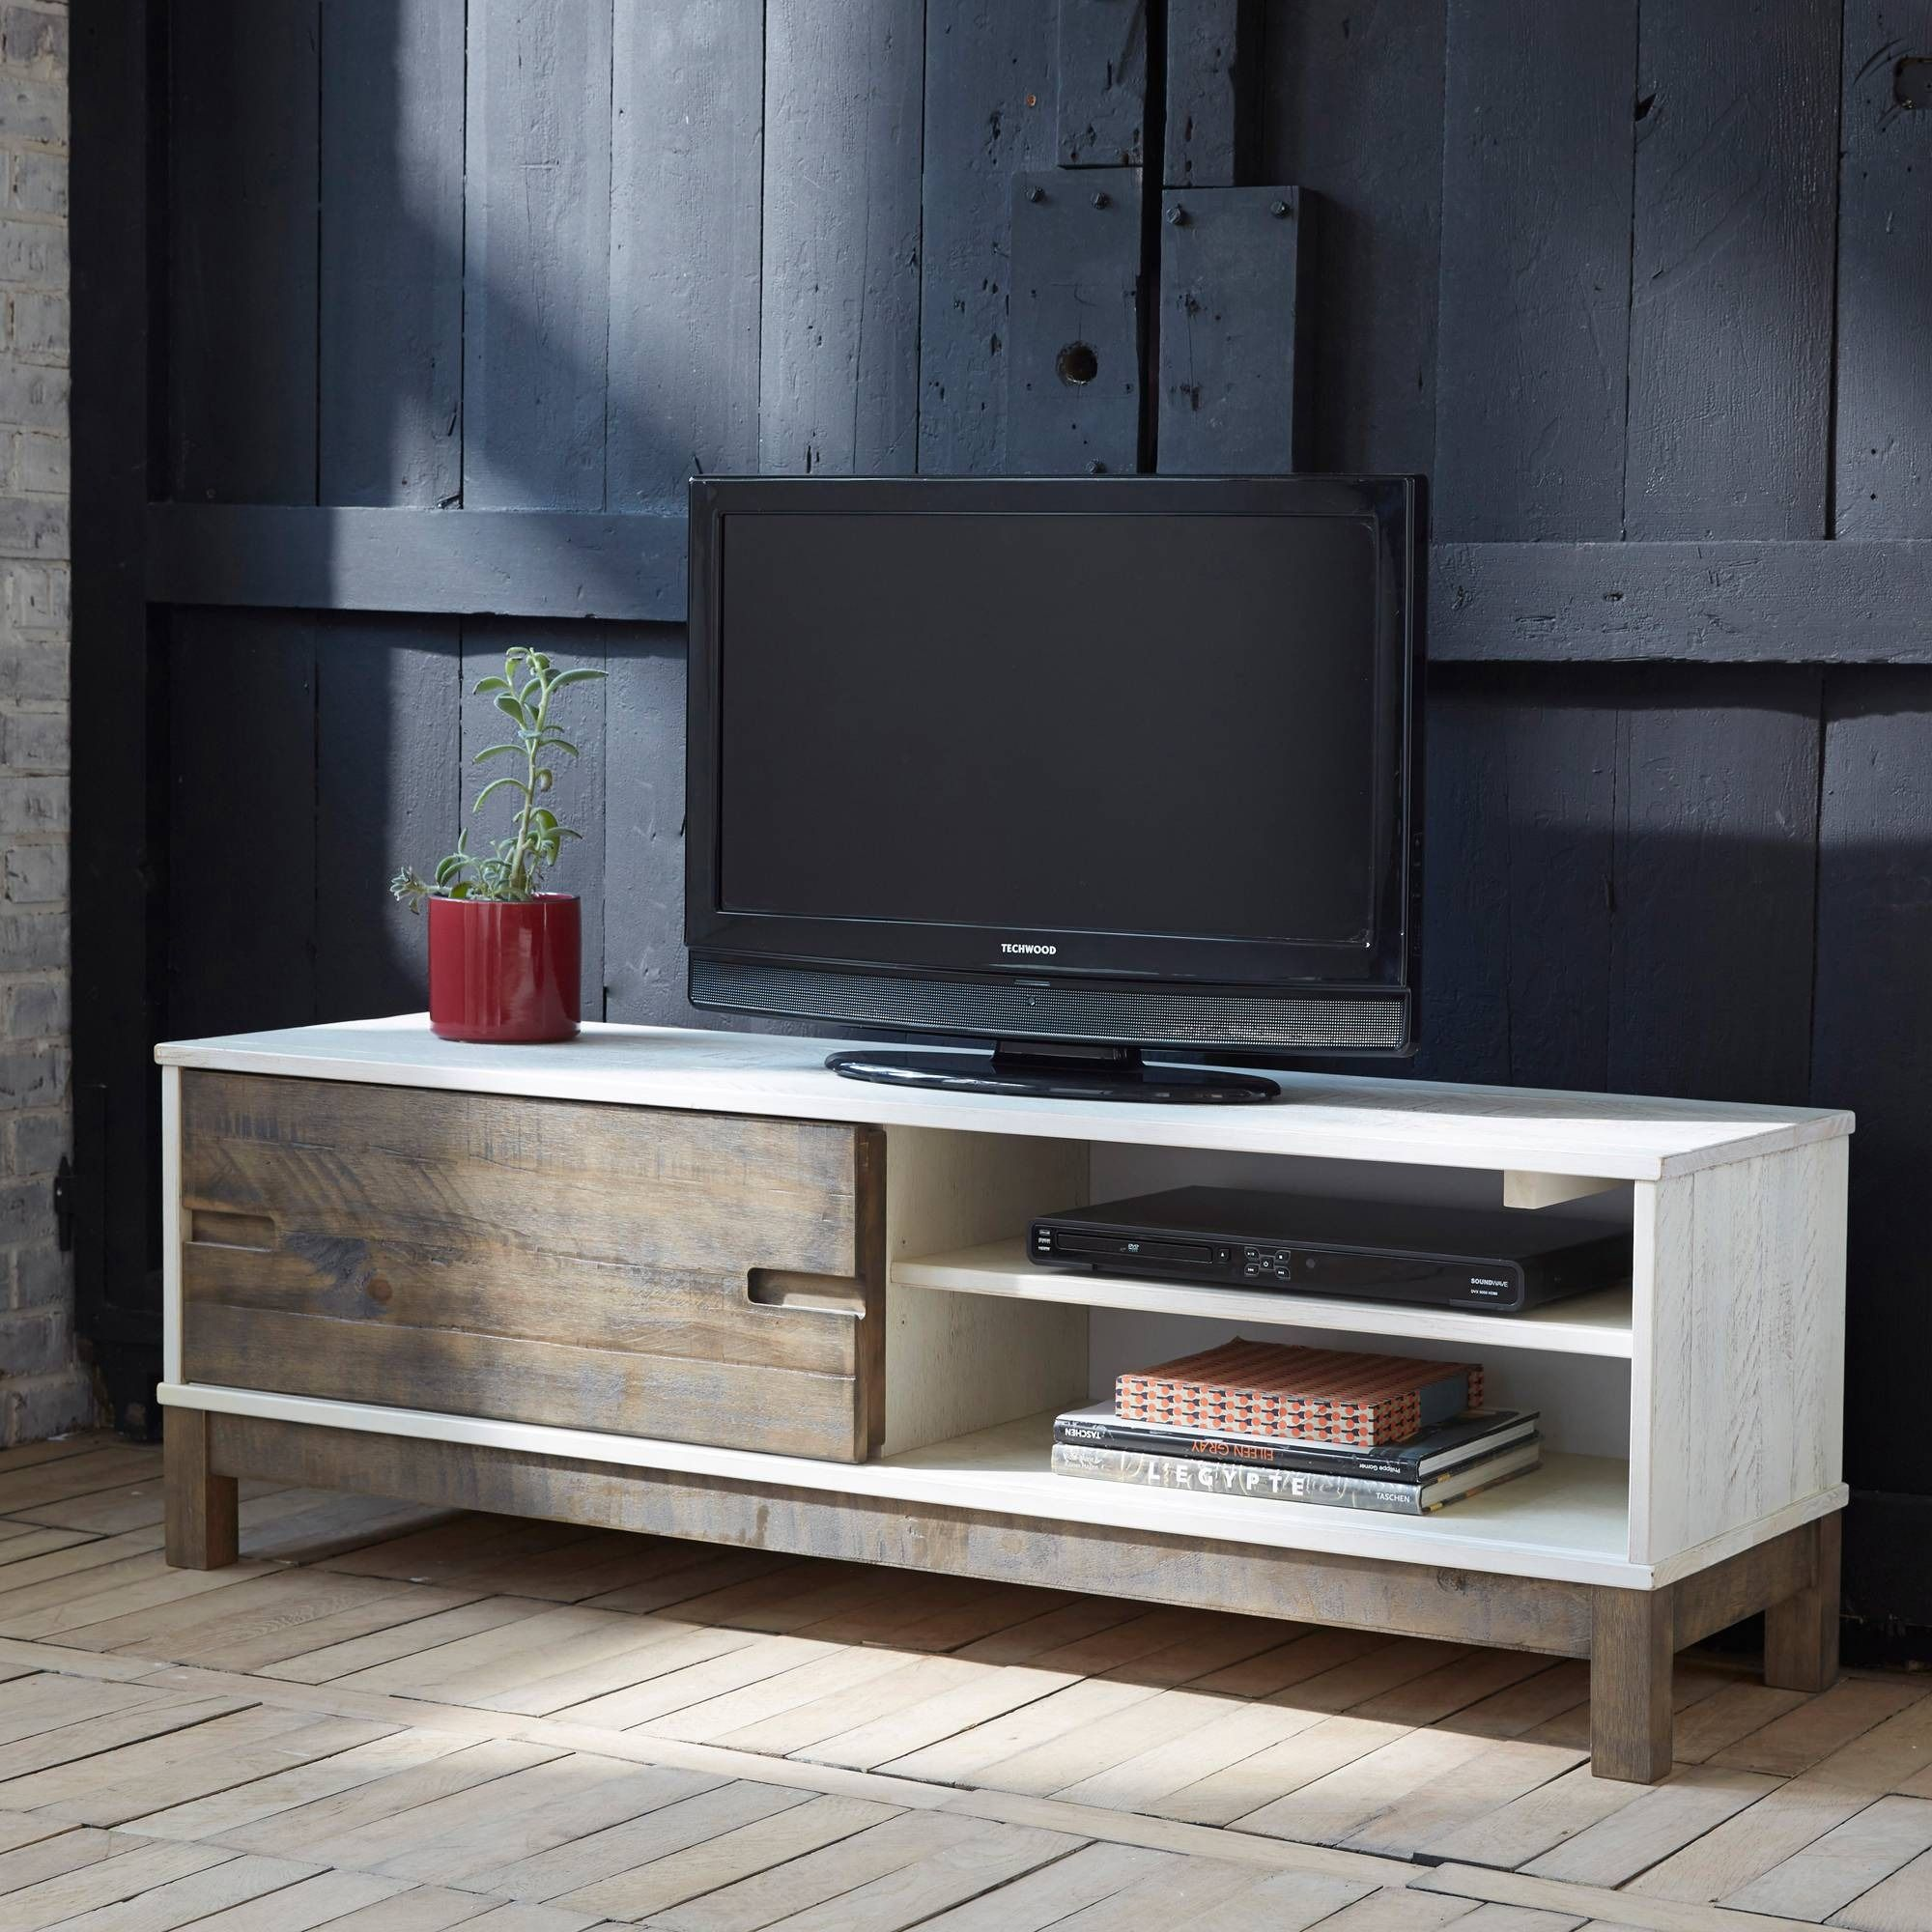 Banc Tv 1 Porte Coulissante 2 Niches Pallet Pin Certifi Fsc 3  # Meuble Tv En Promo